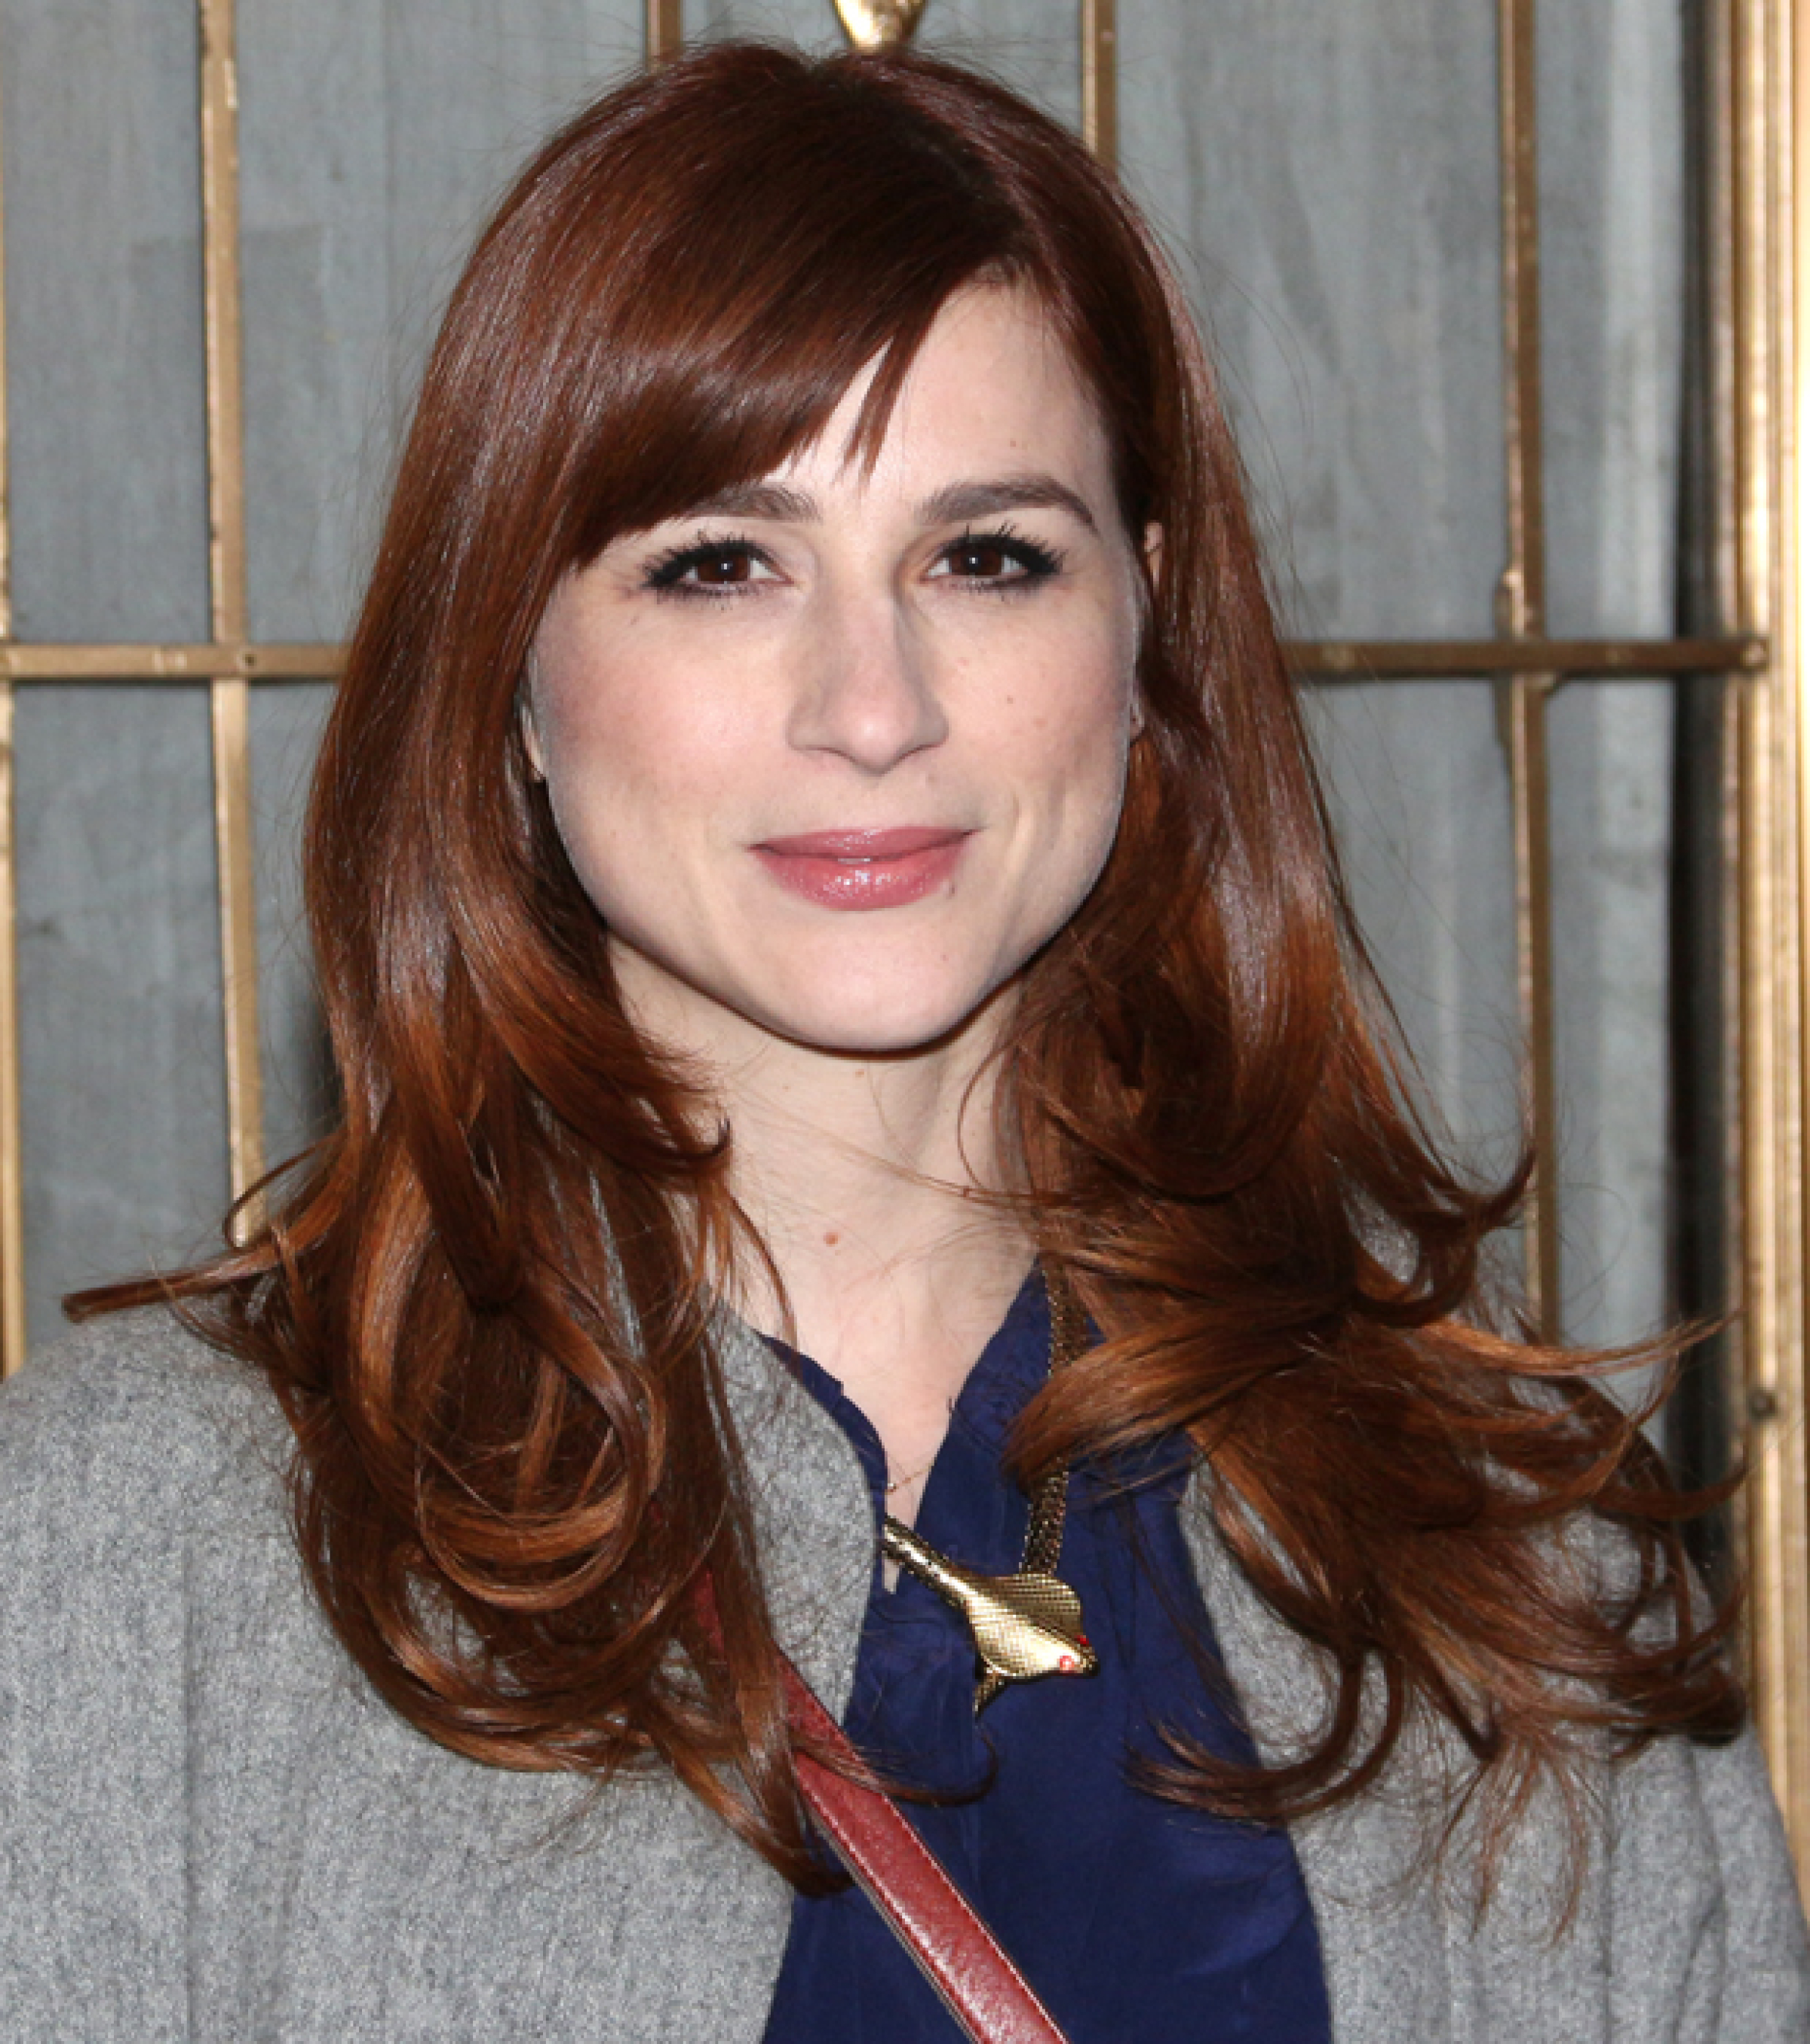 Aya Cash suits up as Stormfront for The Boys Season Two